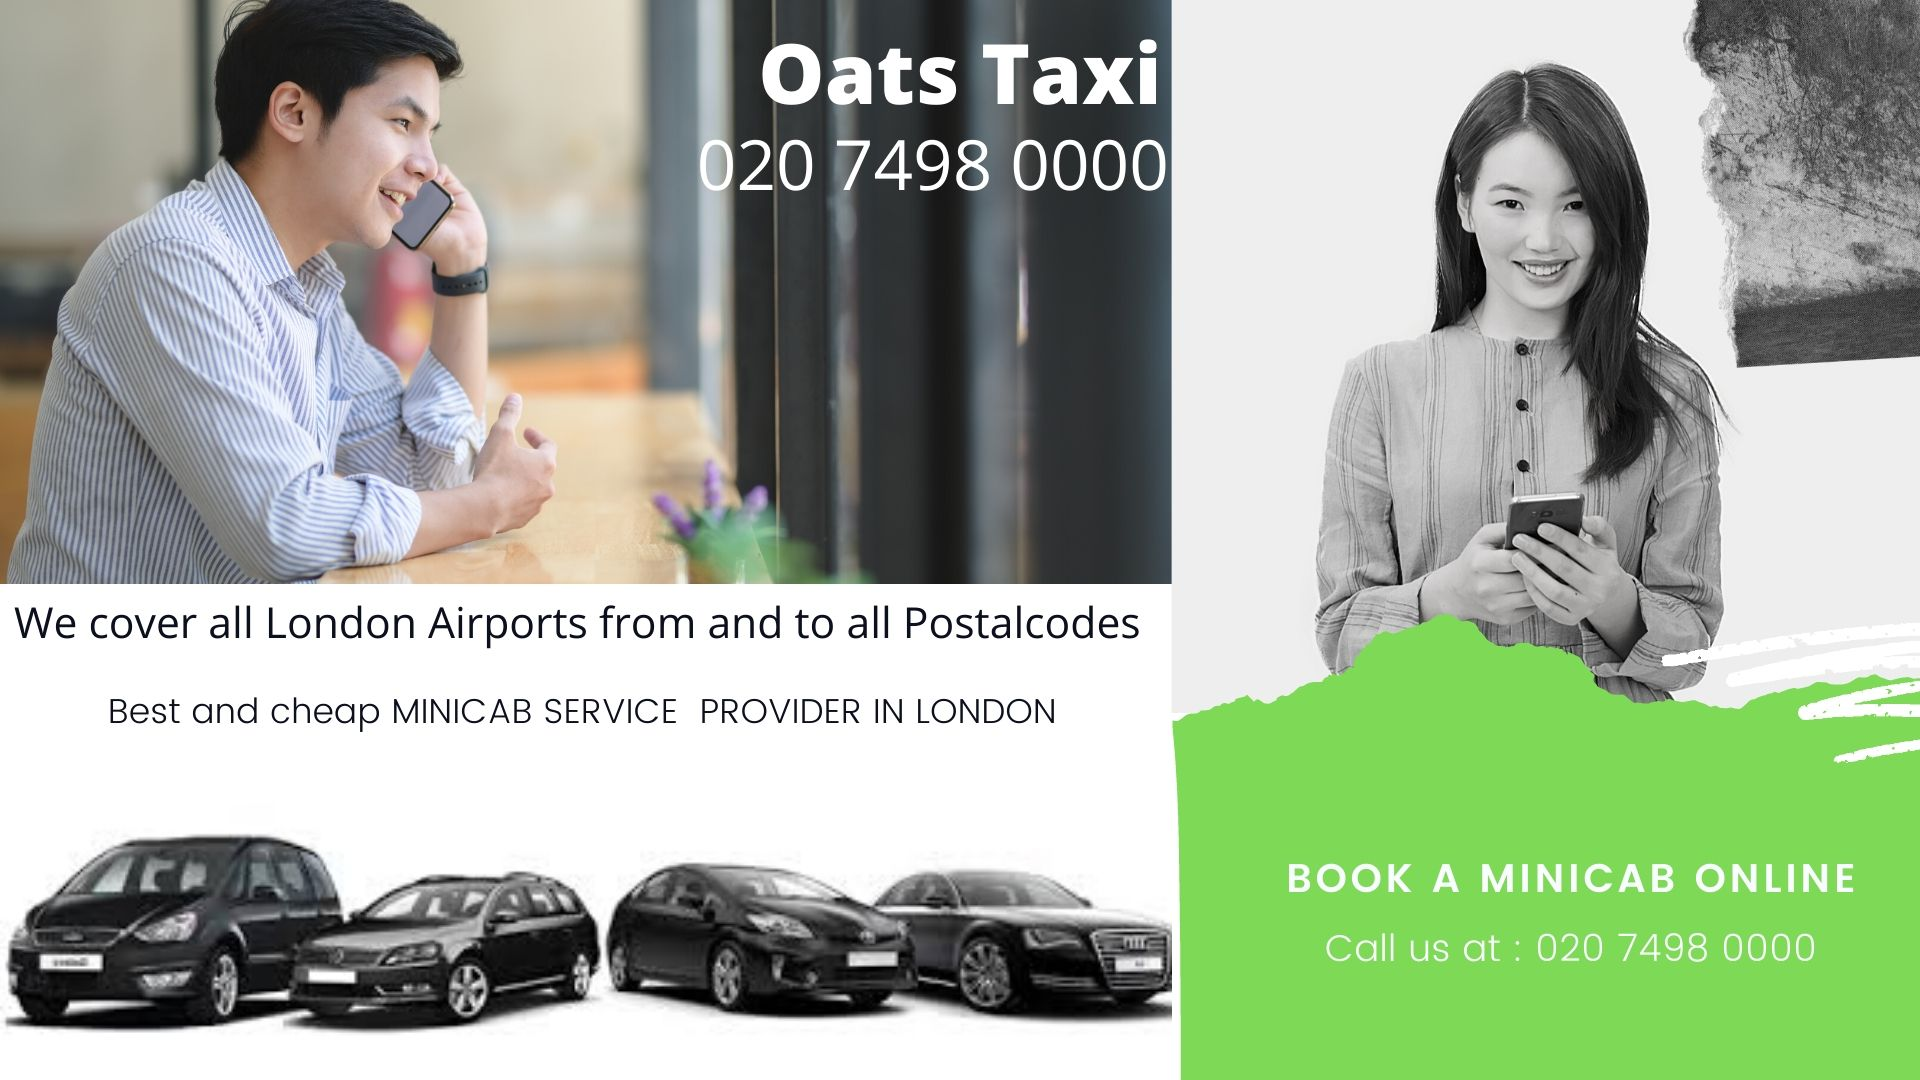 Minicab Near HOPE STREET, Battersea SW11, Minicab From Battersea SW11 To Gatwick Airport